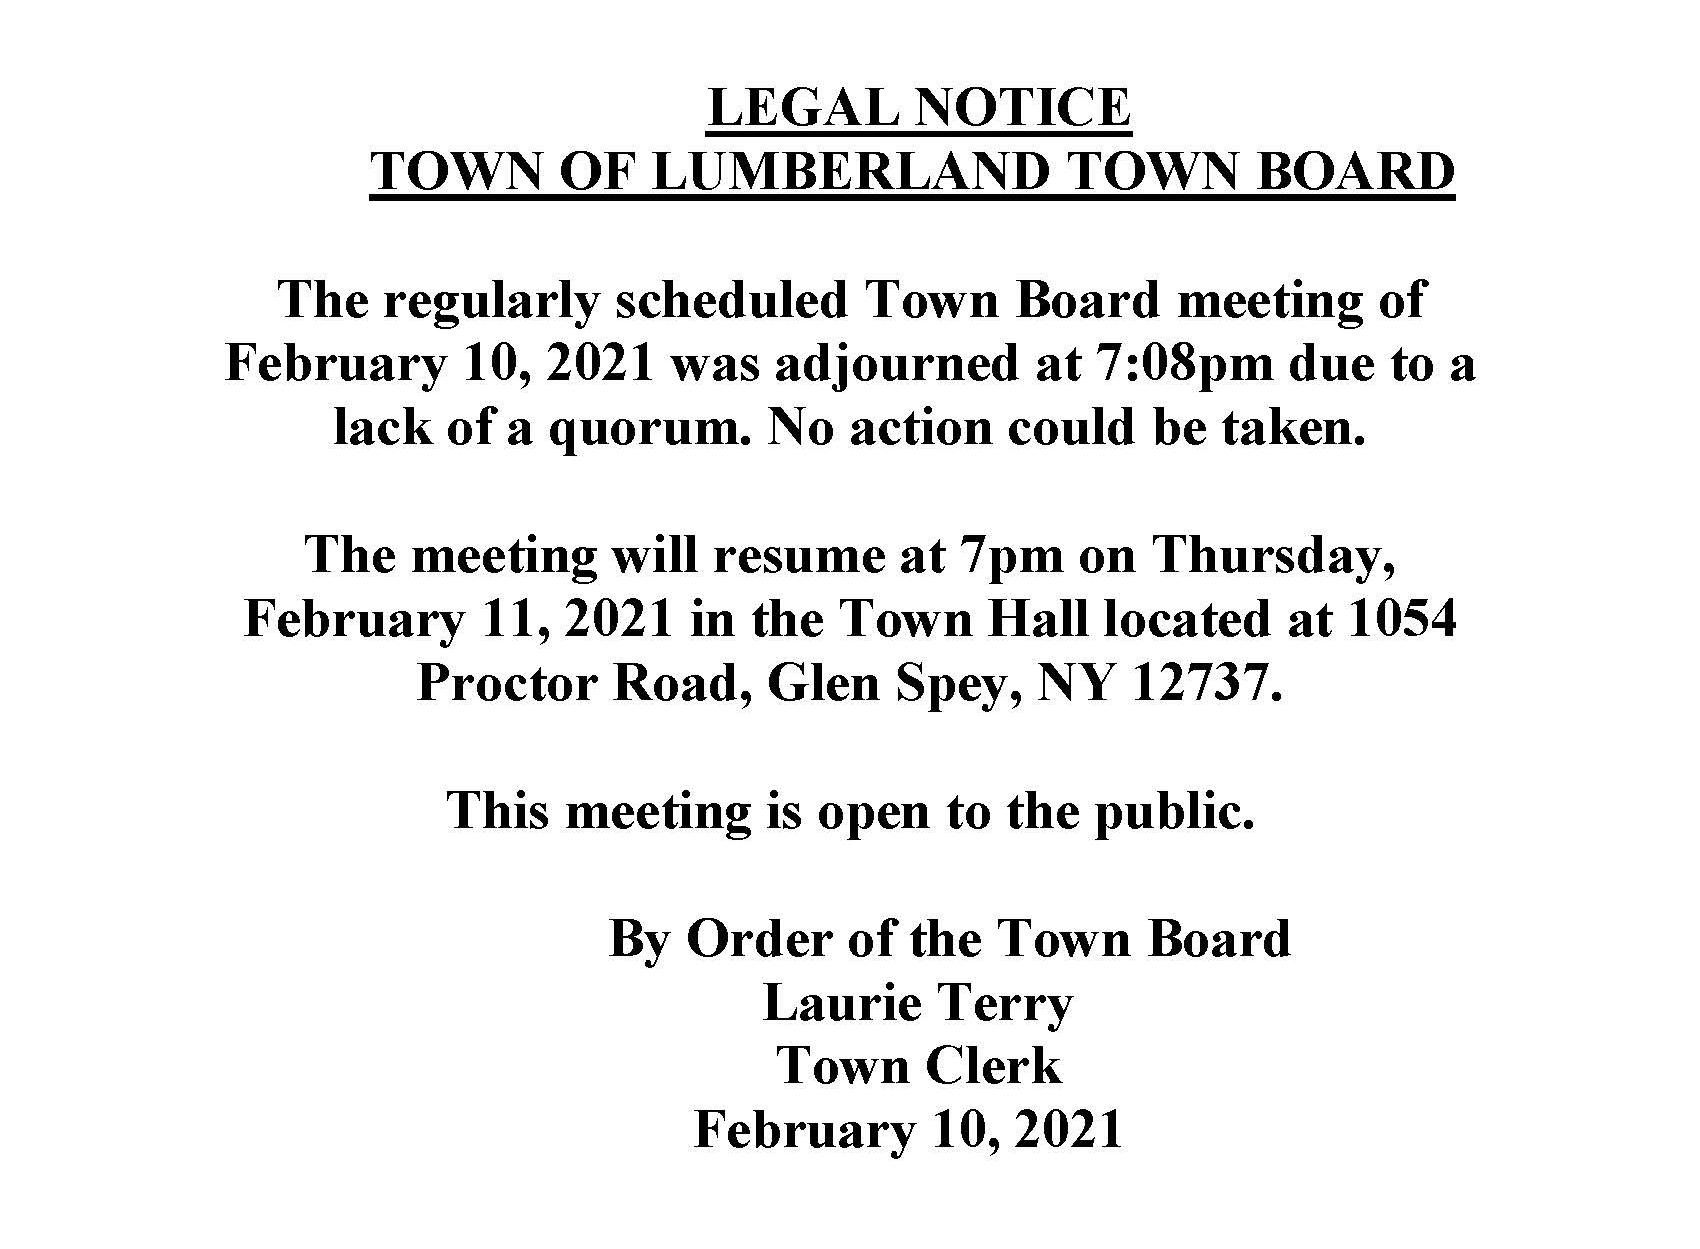 Notice of adjourned meeting - Copy